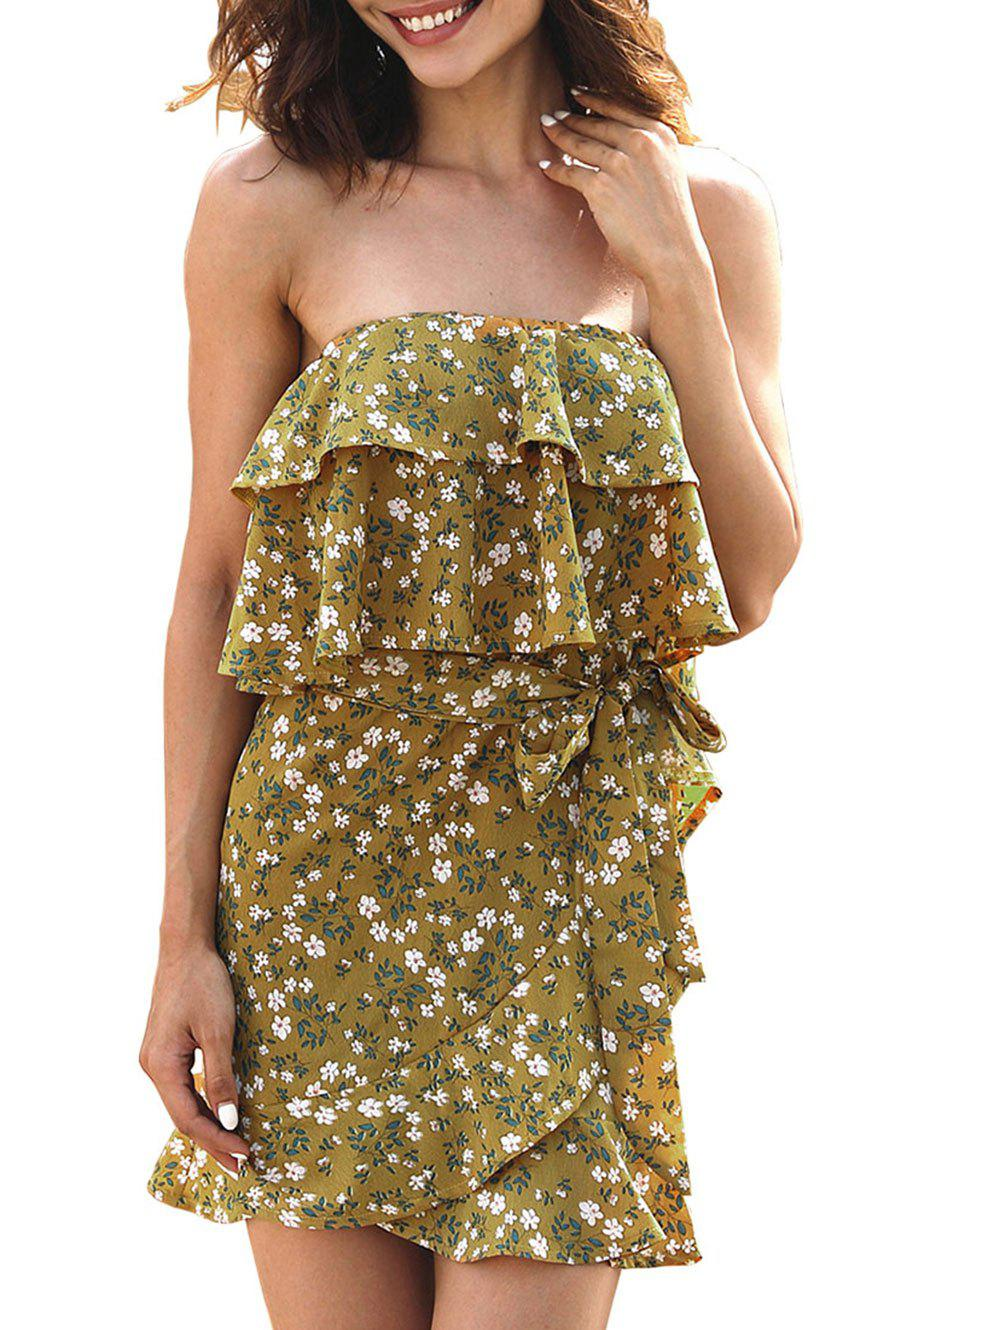 Strapless Layered Ruffle Dress with Belt - GOLDEN BROWN L